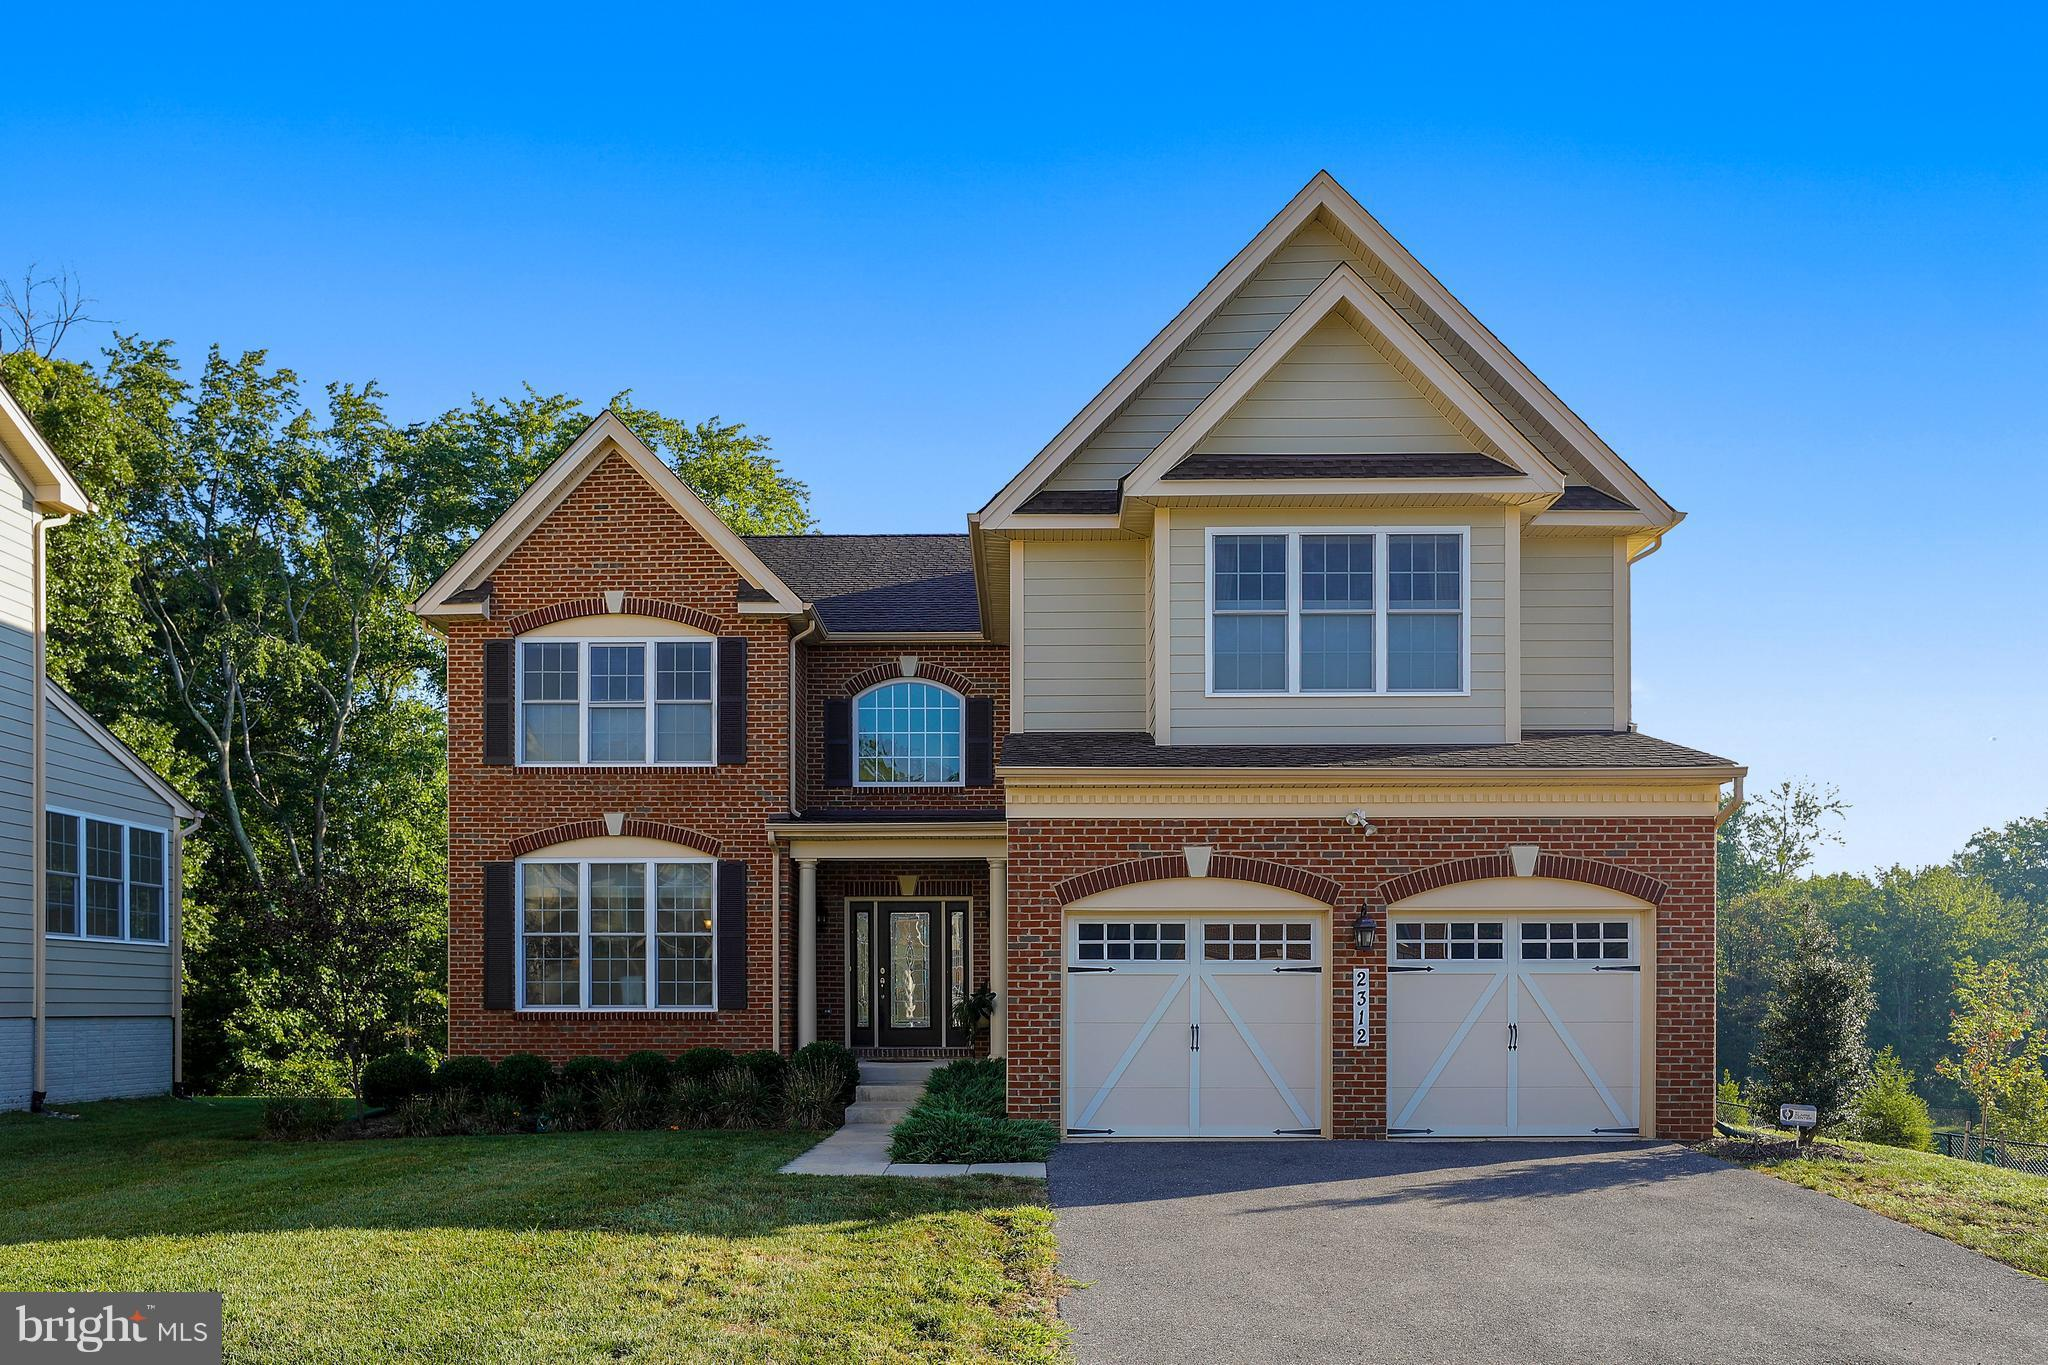 2312 SYCAMORE PLACE, HANOVER, MD 21076